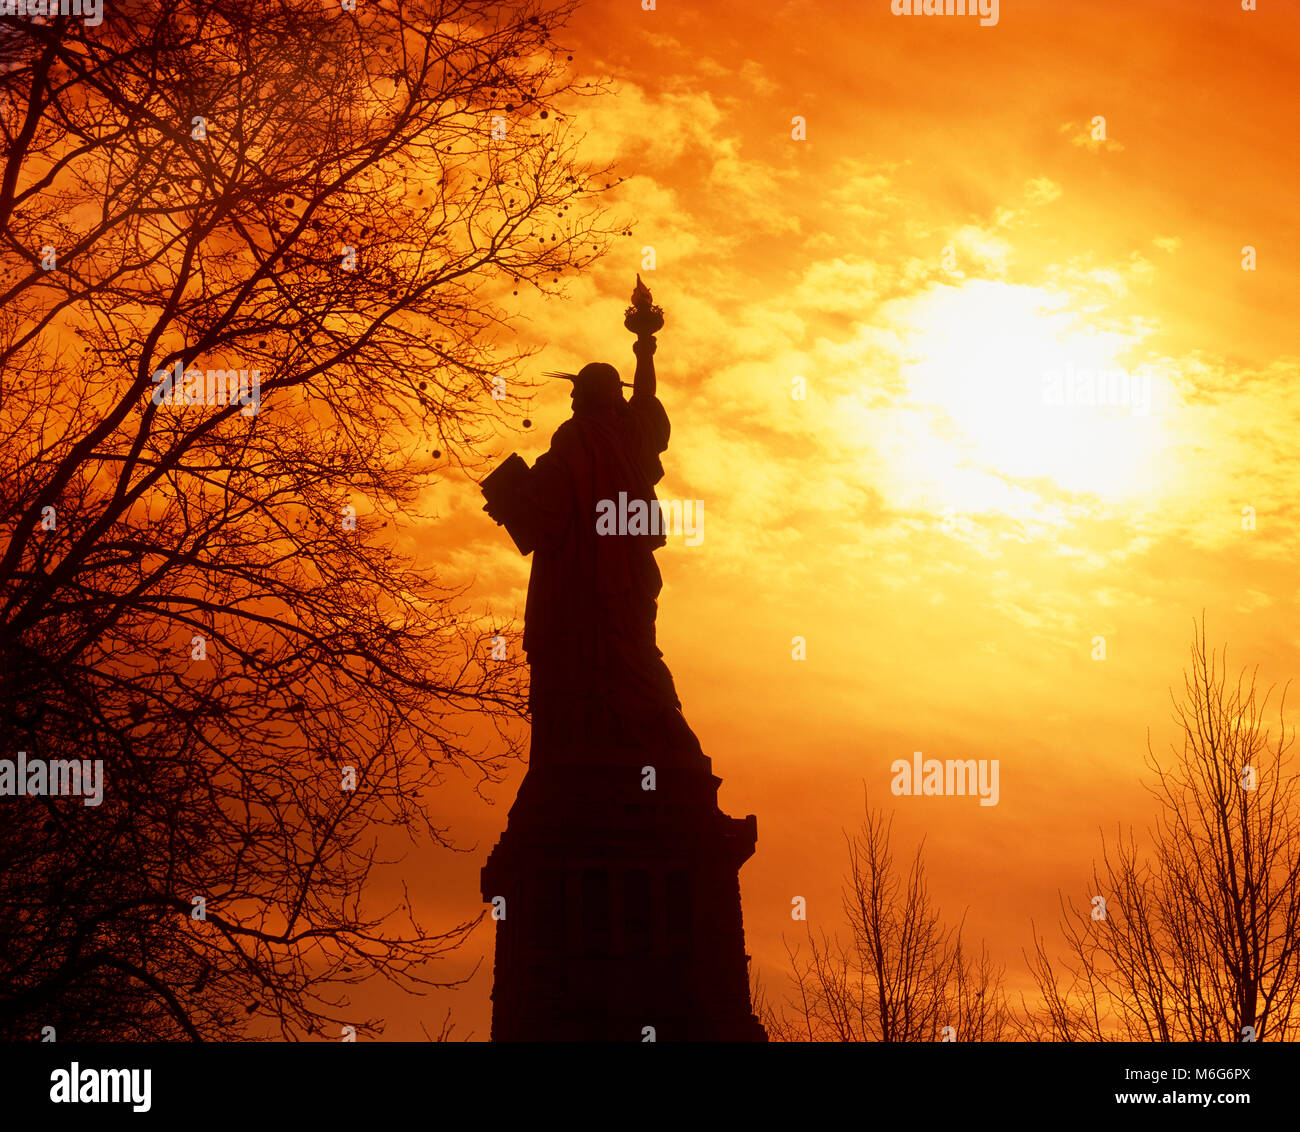 Silhouette of the Statue of Liberty at sunset, New York, USA - Stock Image